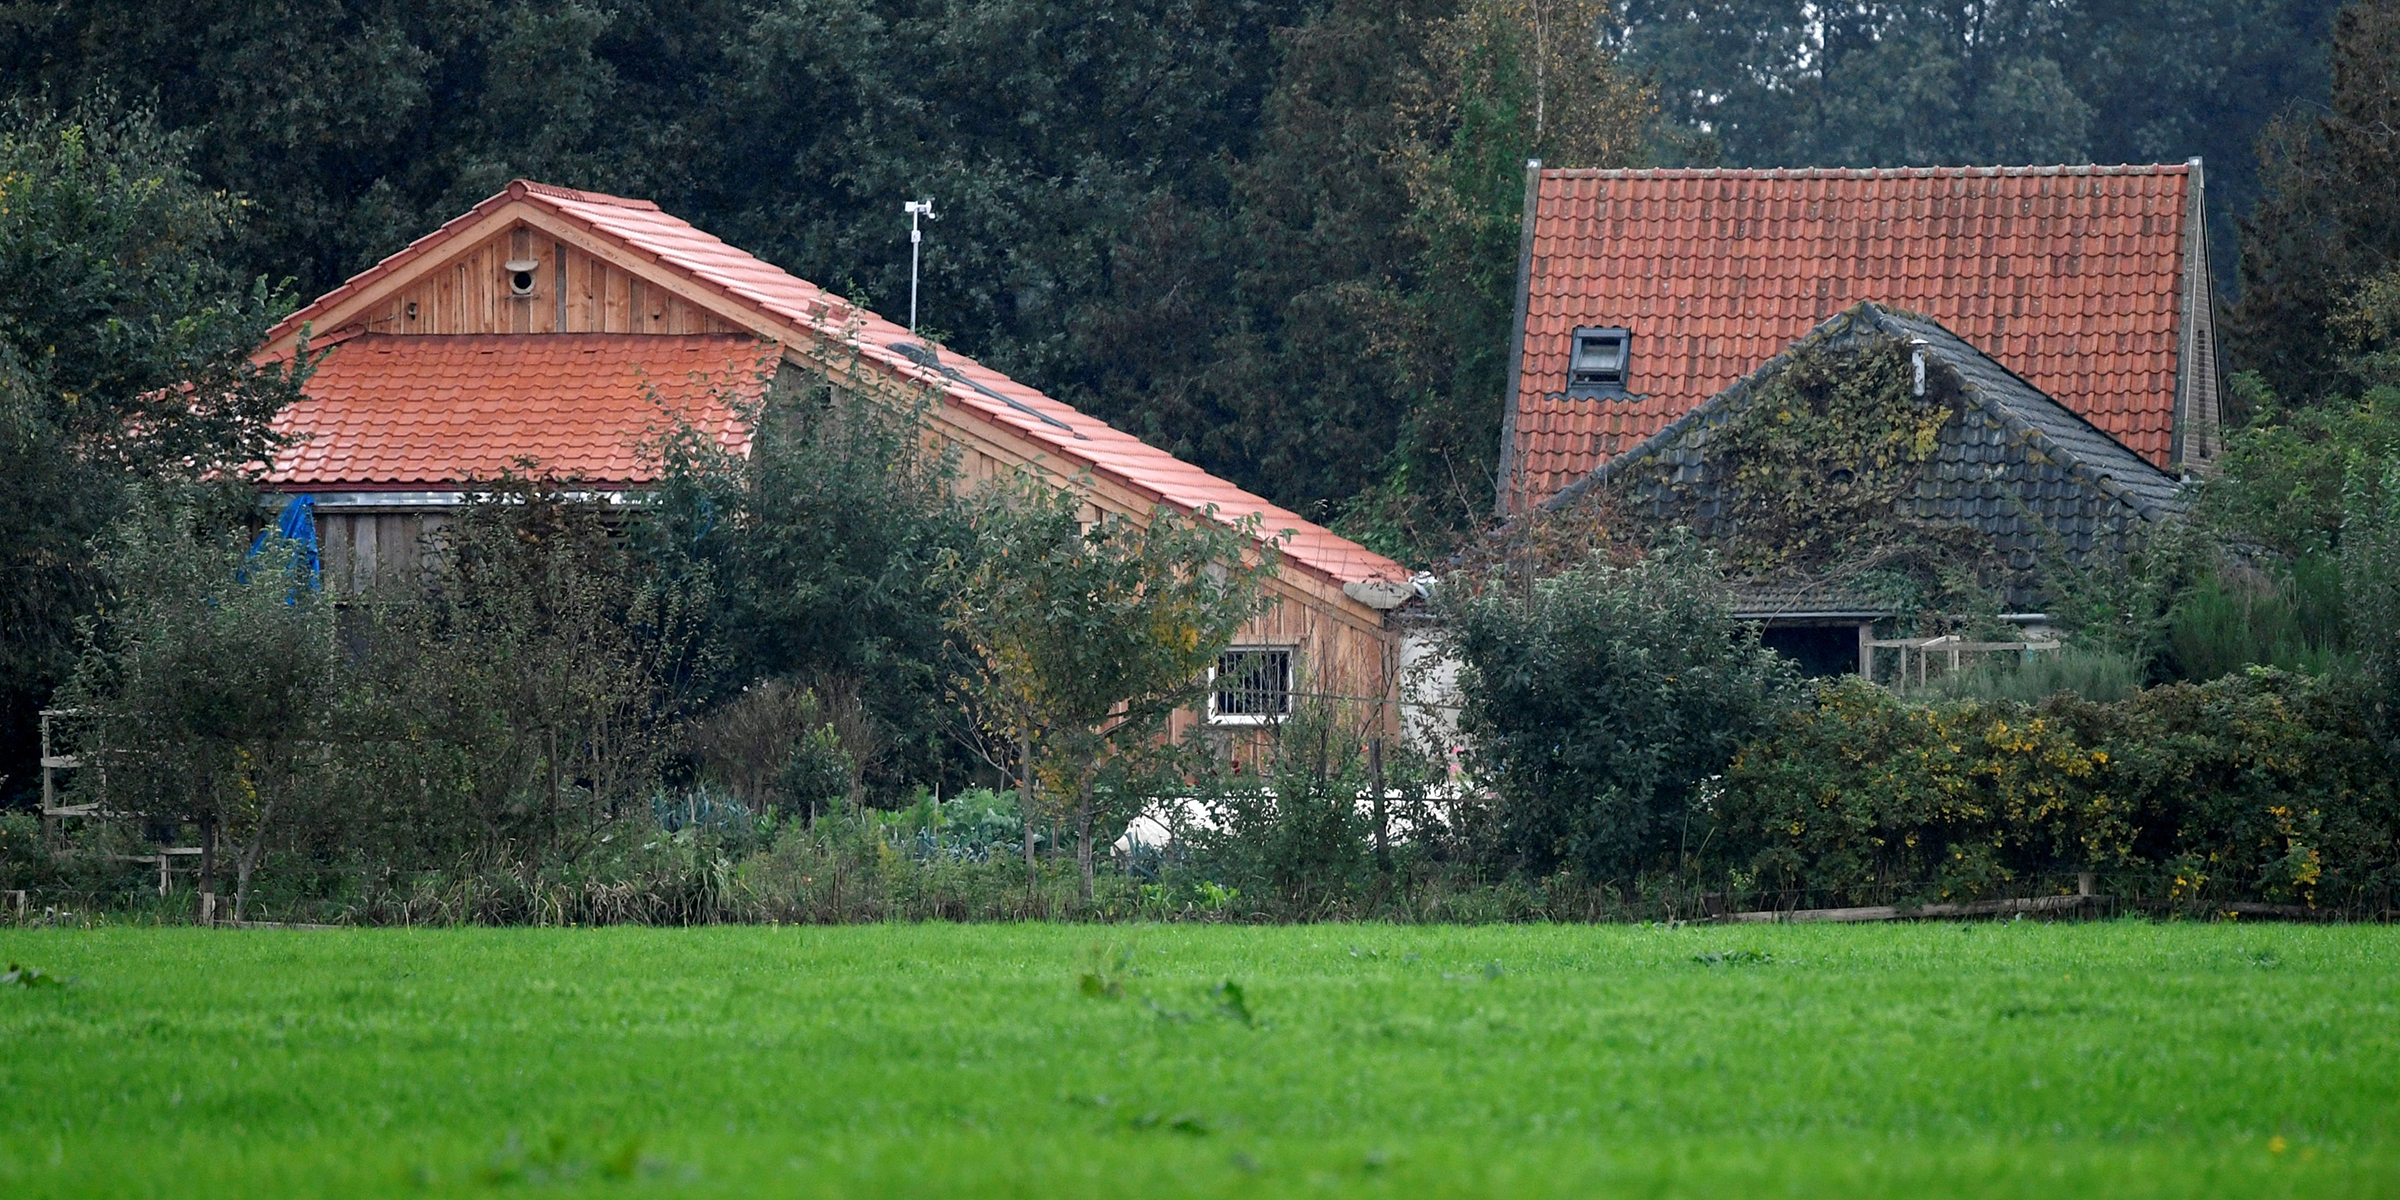 Dutch police discover family locked away for 9 years on farm